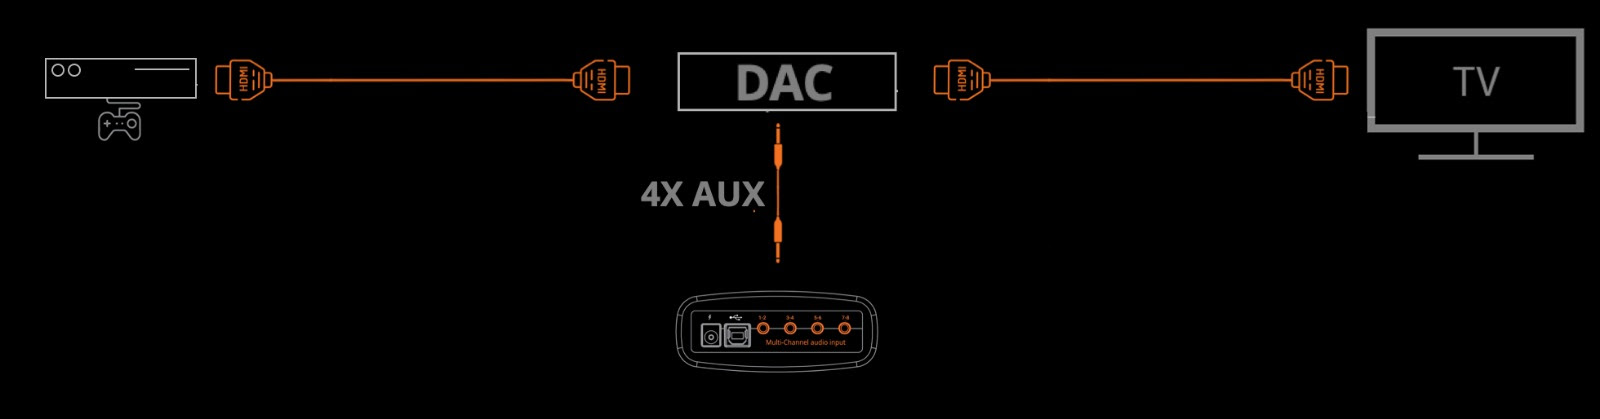 connect the console hdmi out port to the dac hdmi in port, using the first  hdmi cable